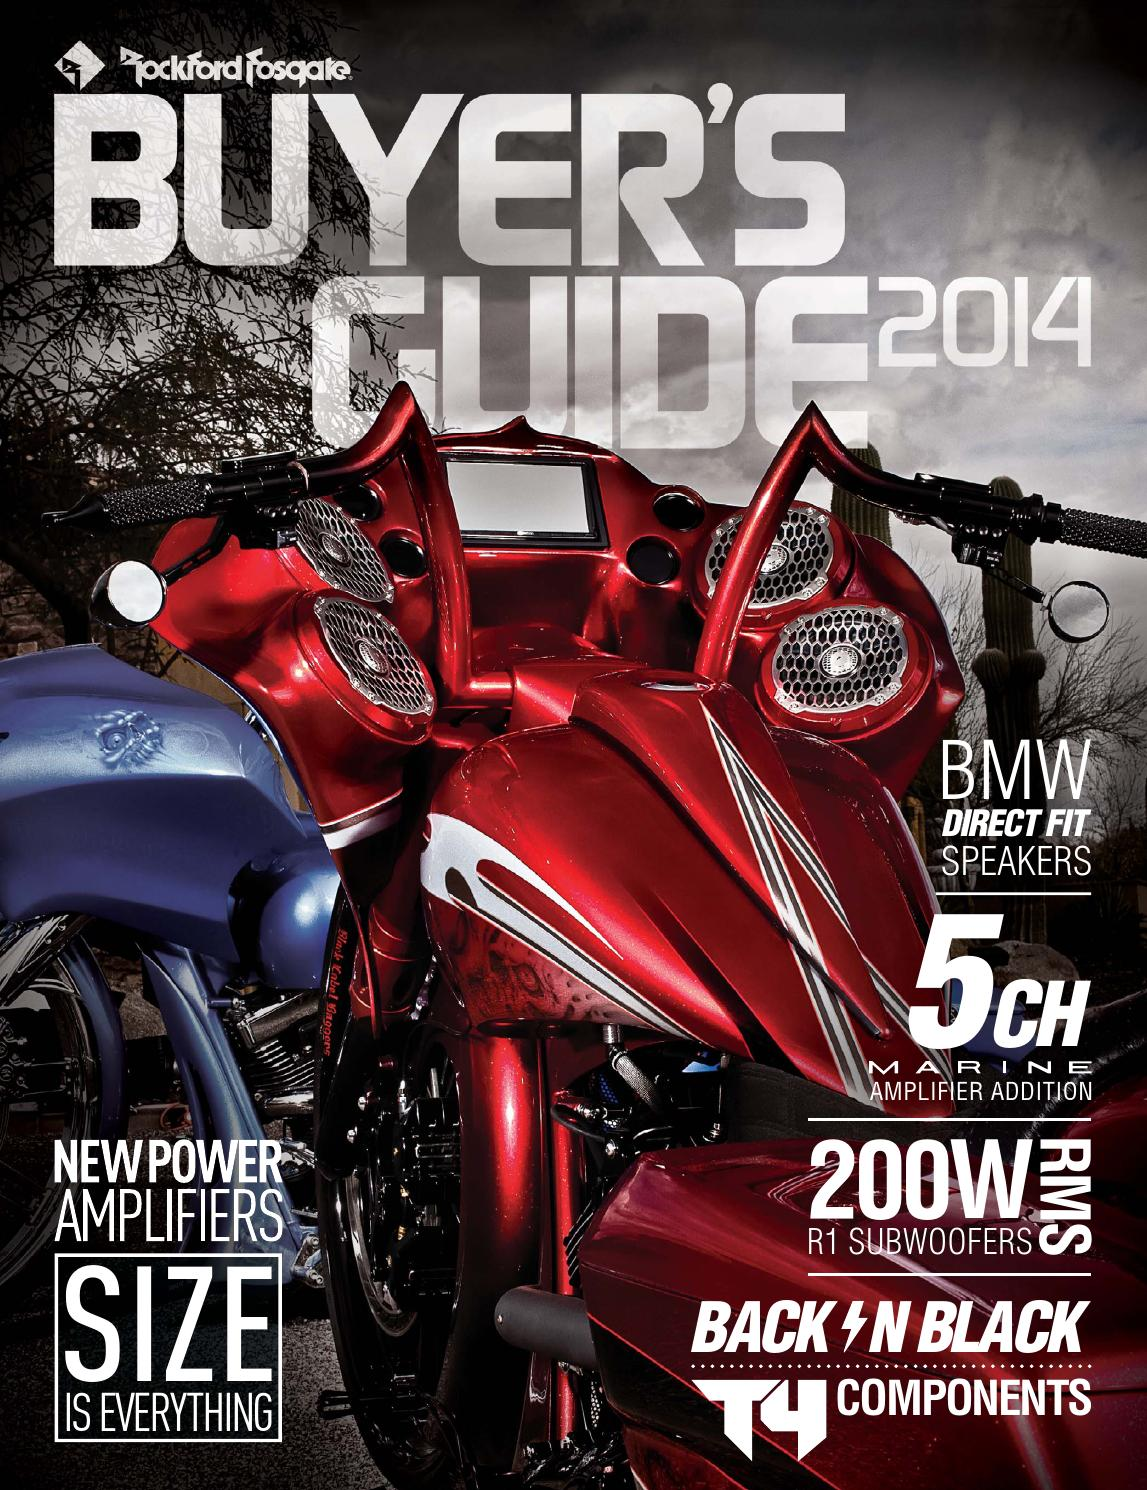 2014 VOLUME 6 0 Buyer's Guide by Rockford Fosgate - issuu